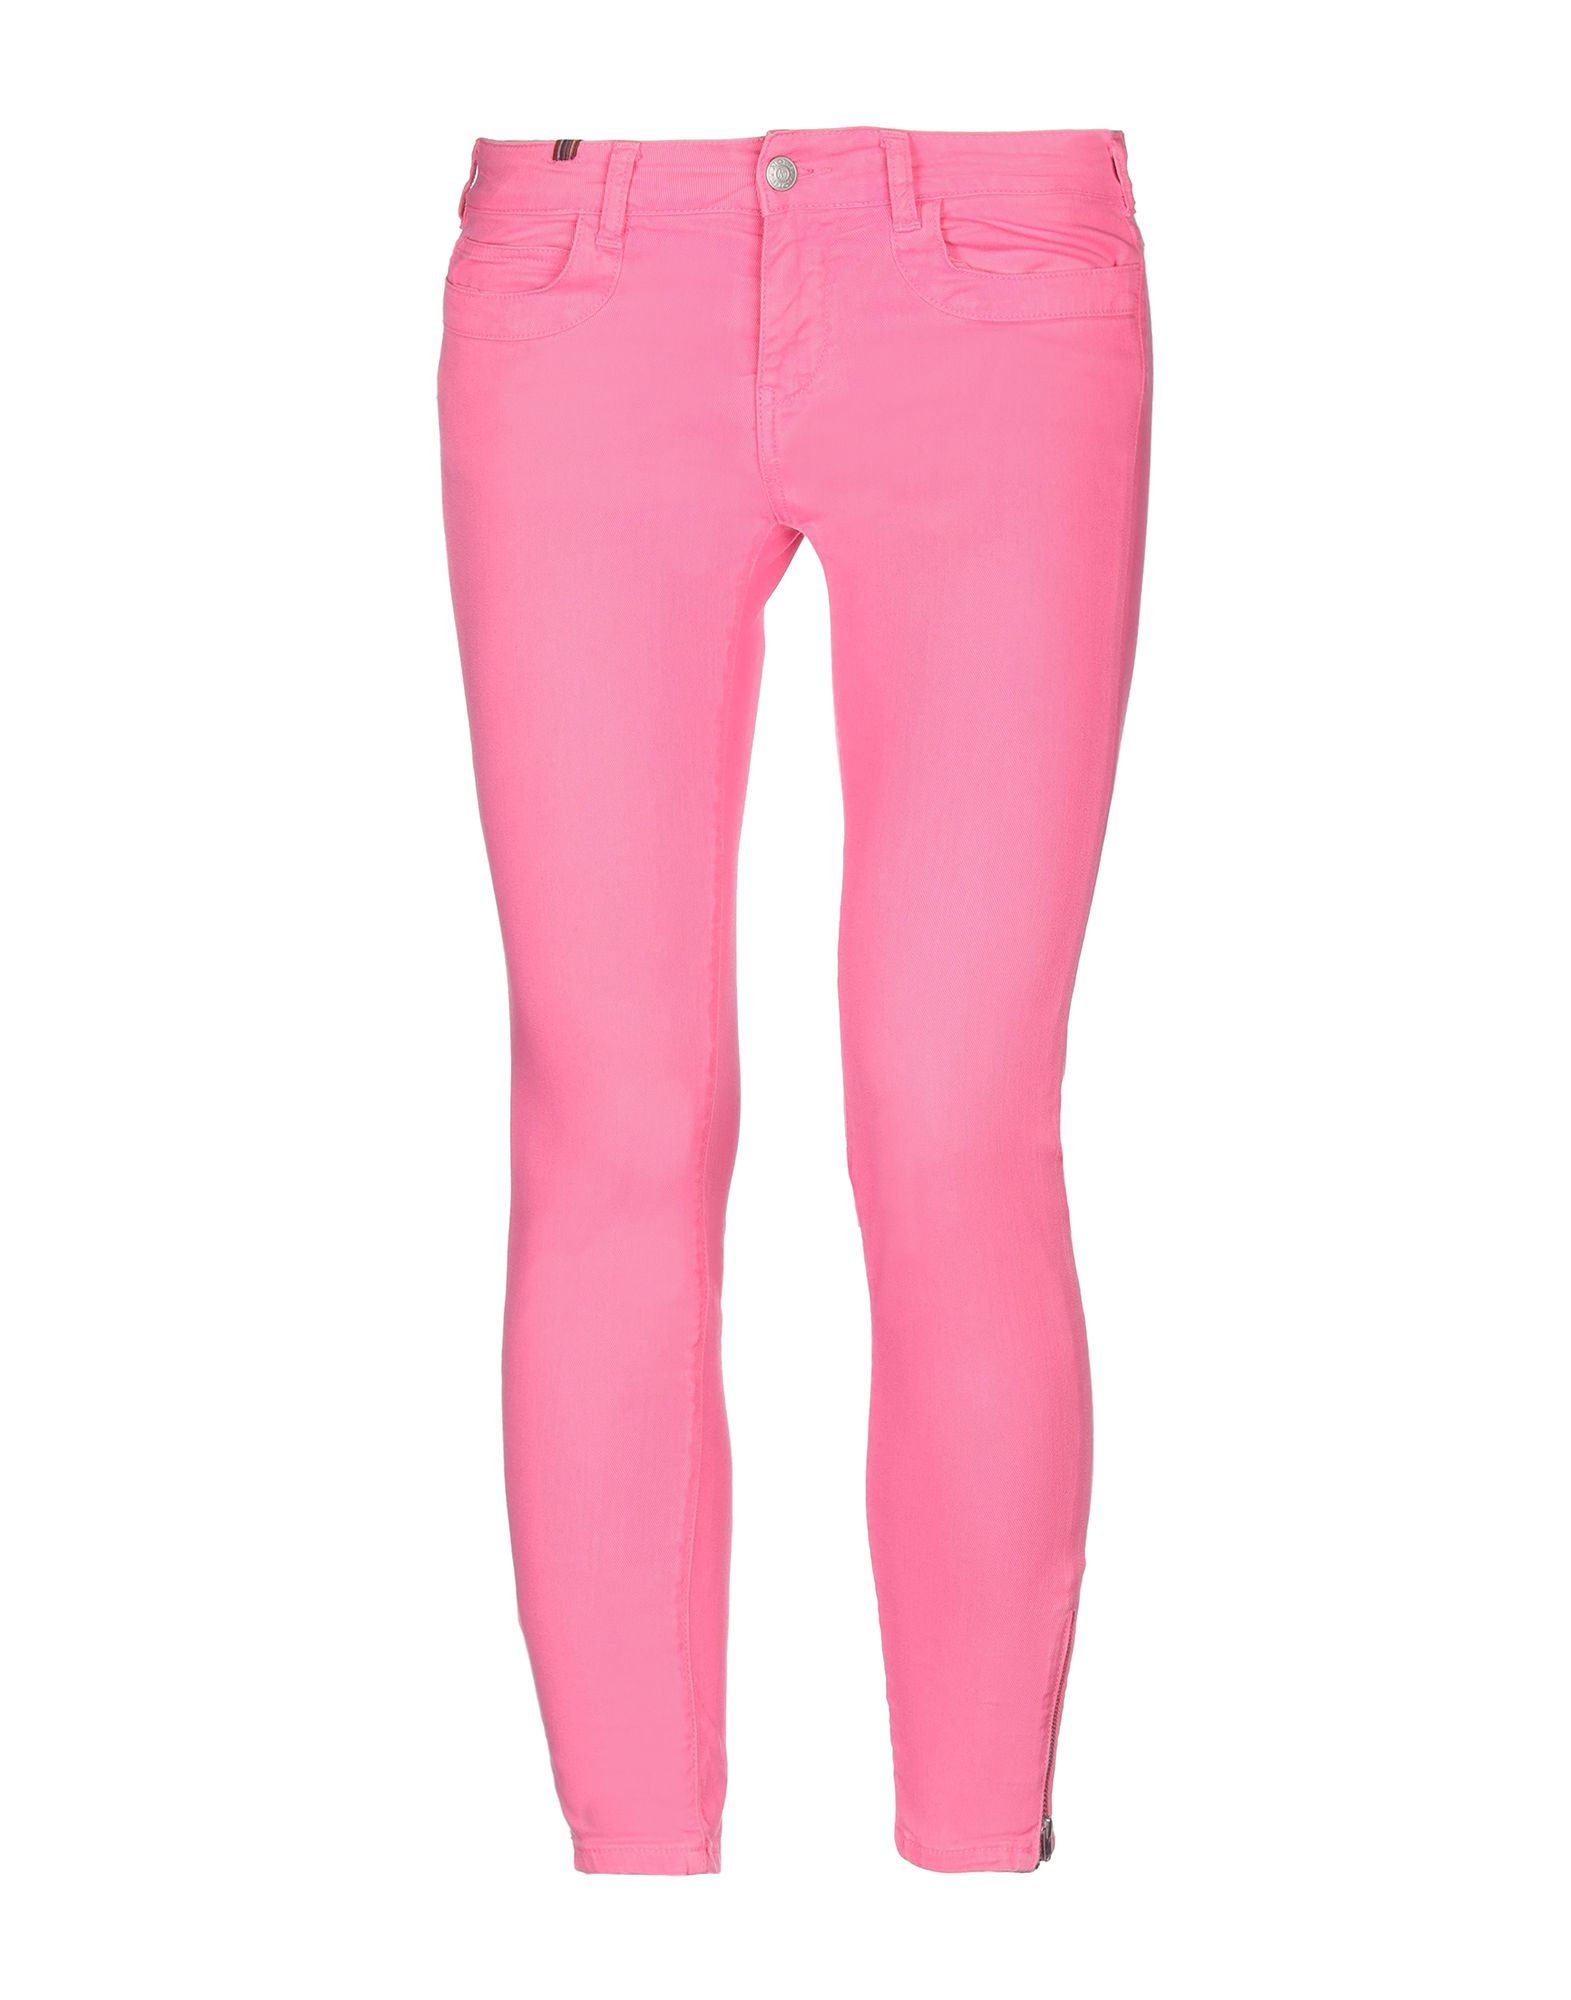 NOTIFY Jeans in Fuchsia